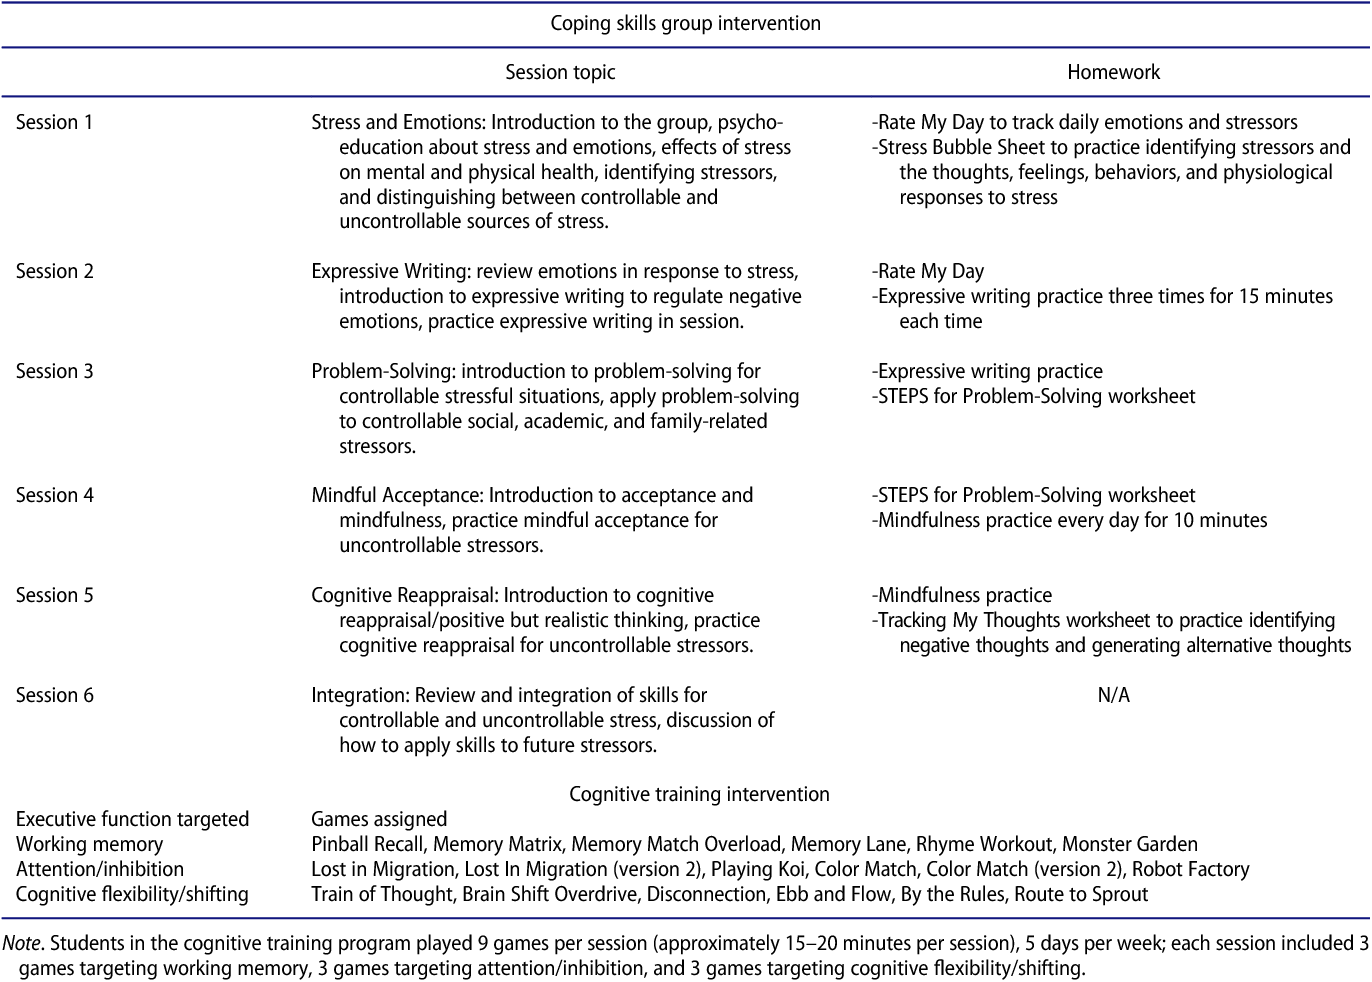 Comparison Of Two Approaches To Prevention Of Mental Health Problems